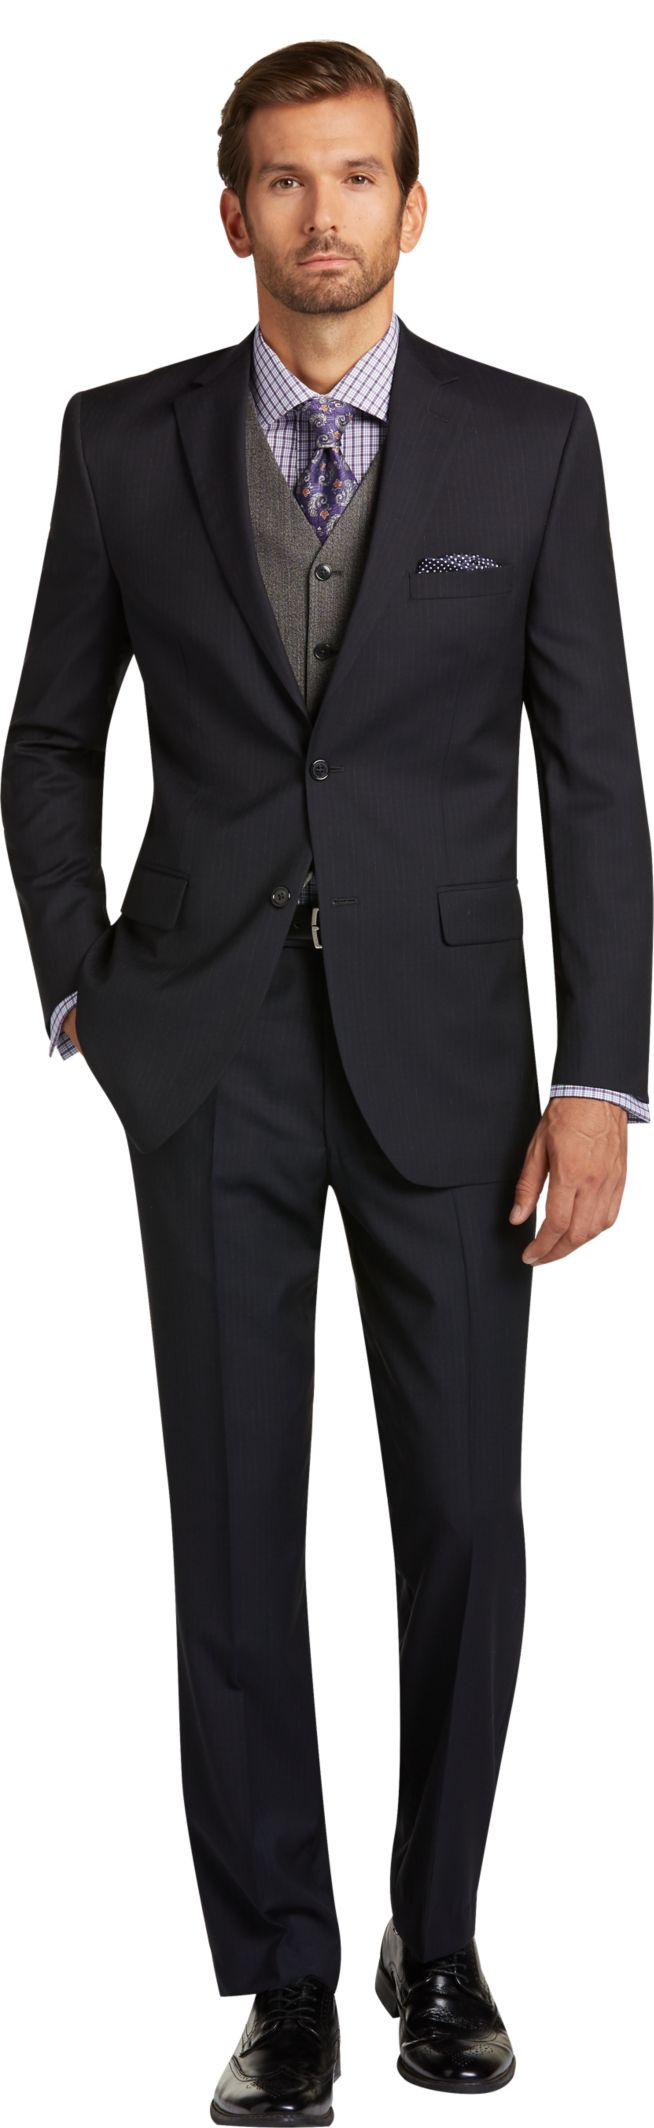 Tailored Fit Suits | Shop Tailor Fitted Men's Suits | JoS. A. Bank